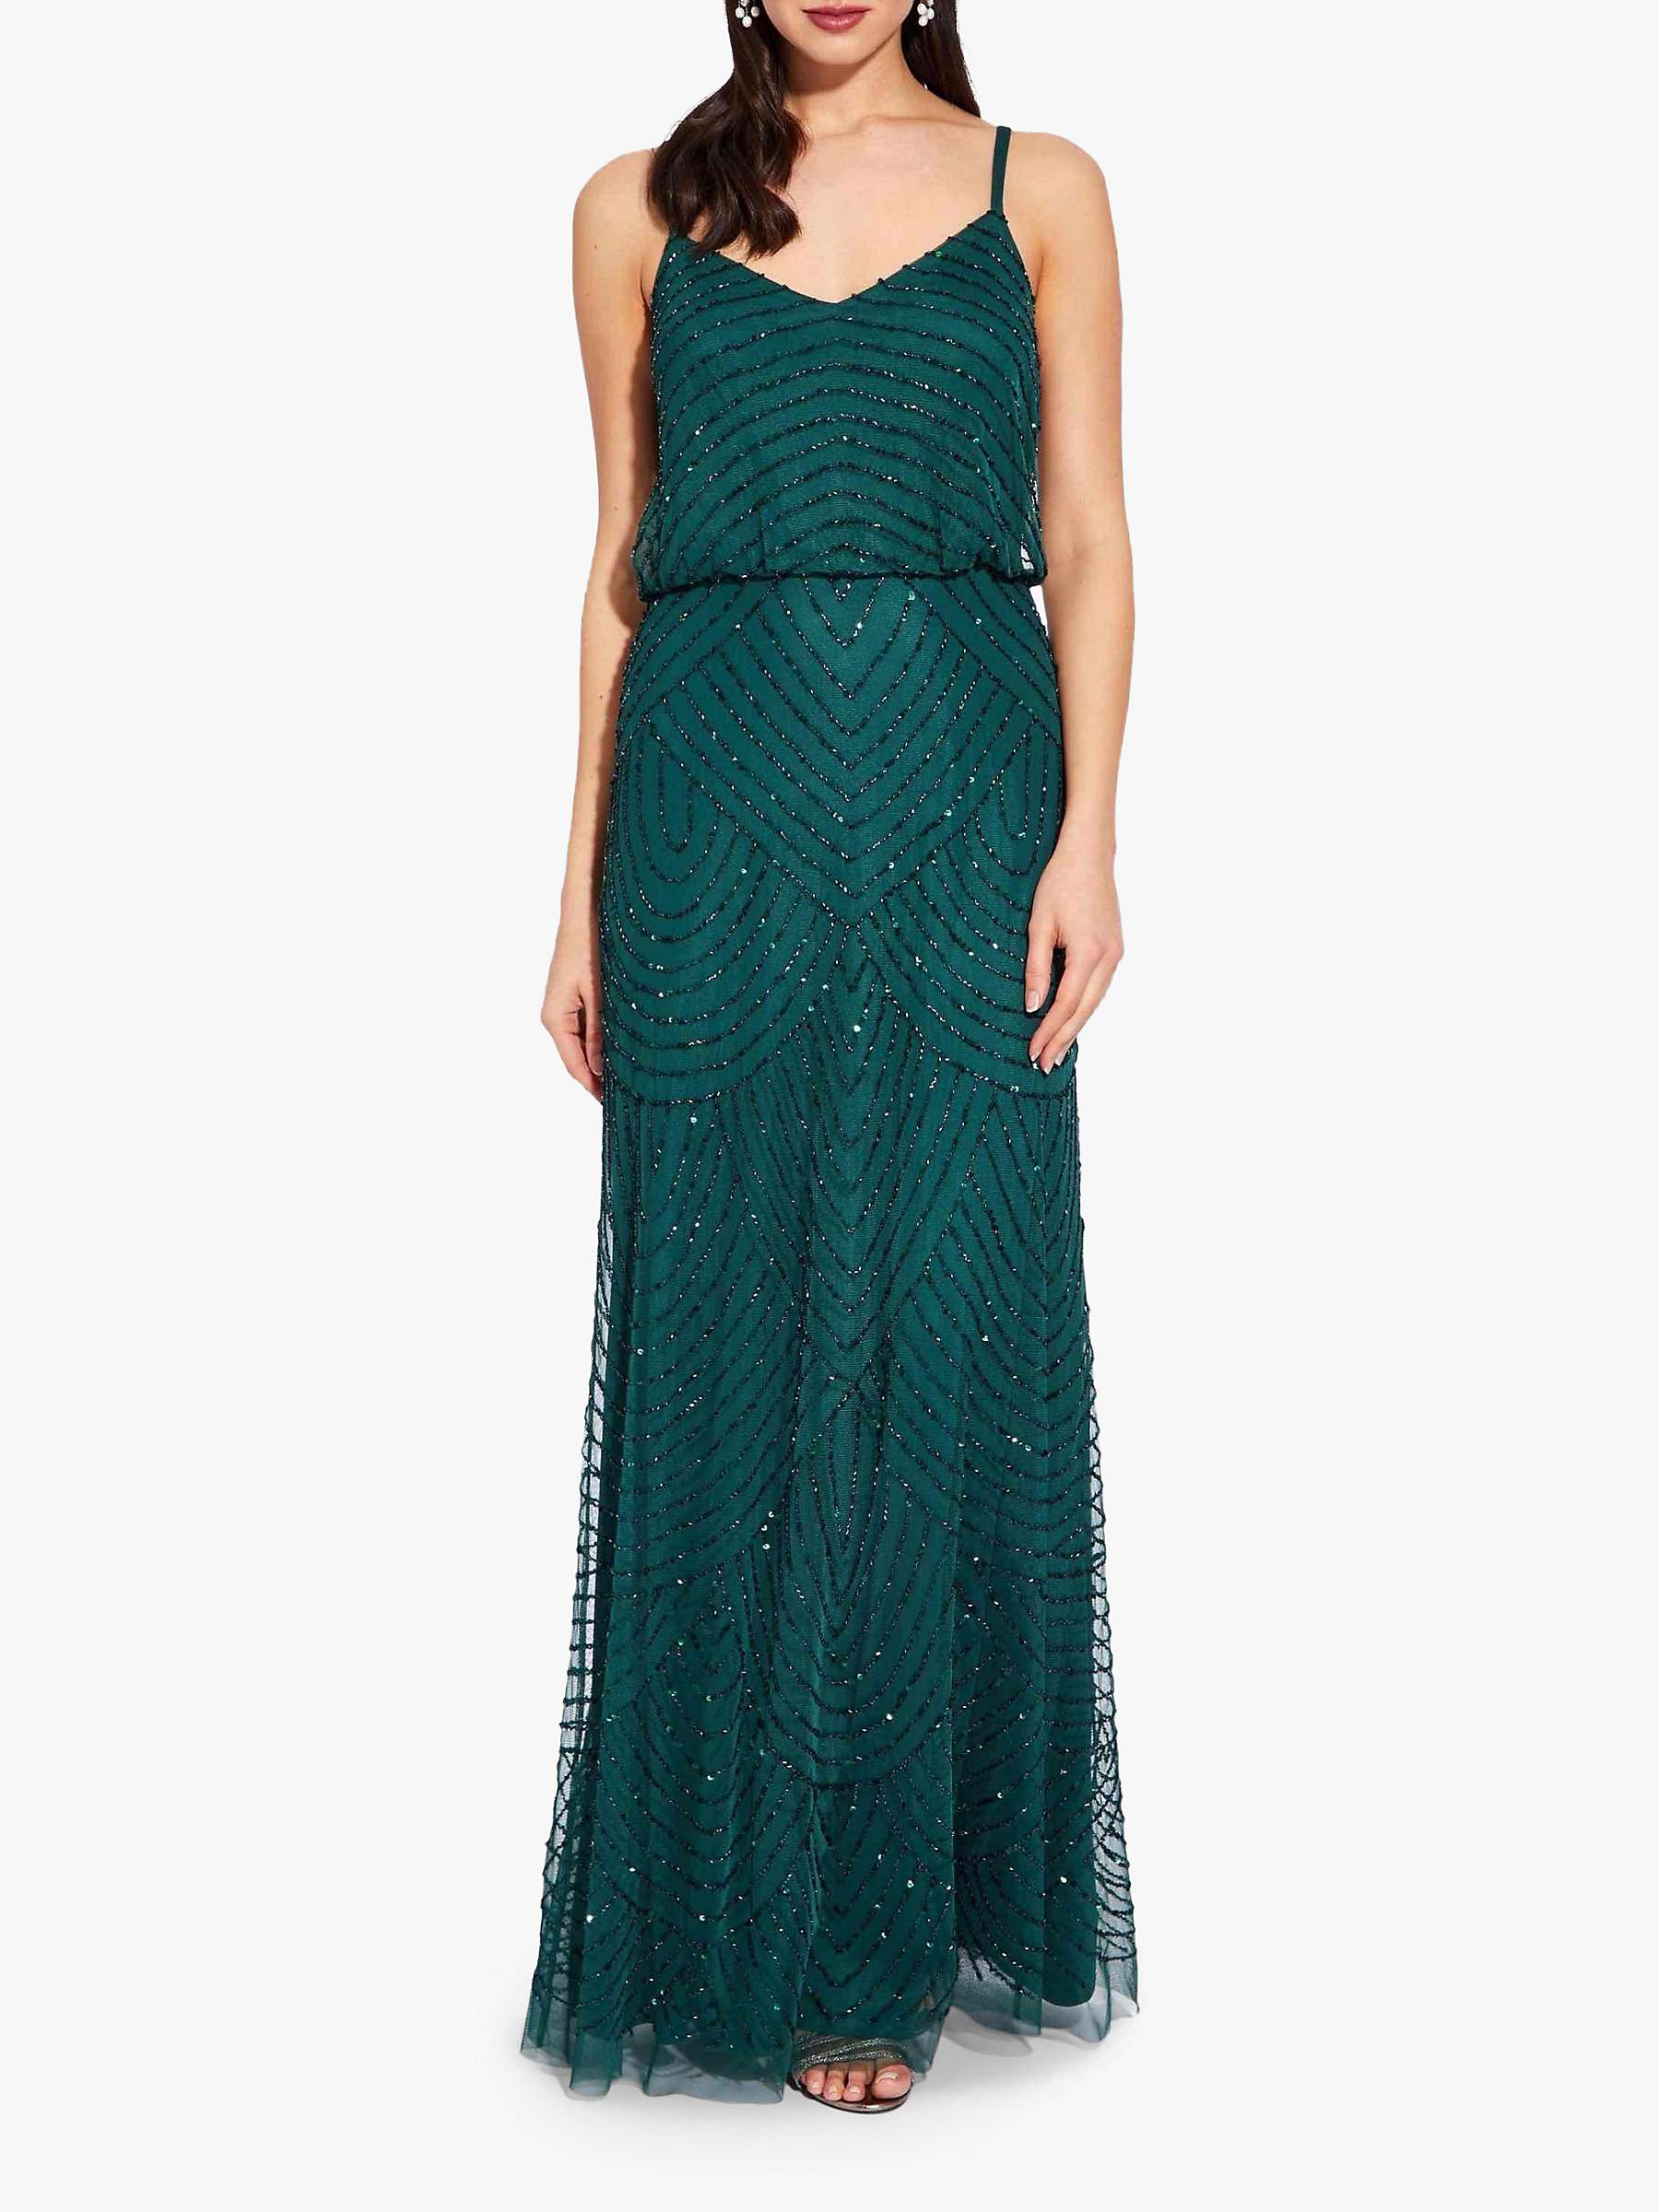 Adrianna Papell Beaded Pattern Maxi Dress, Dusty Emerald by Adrianna Papell